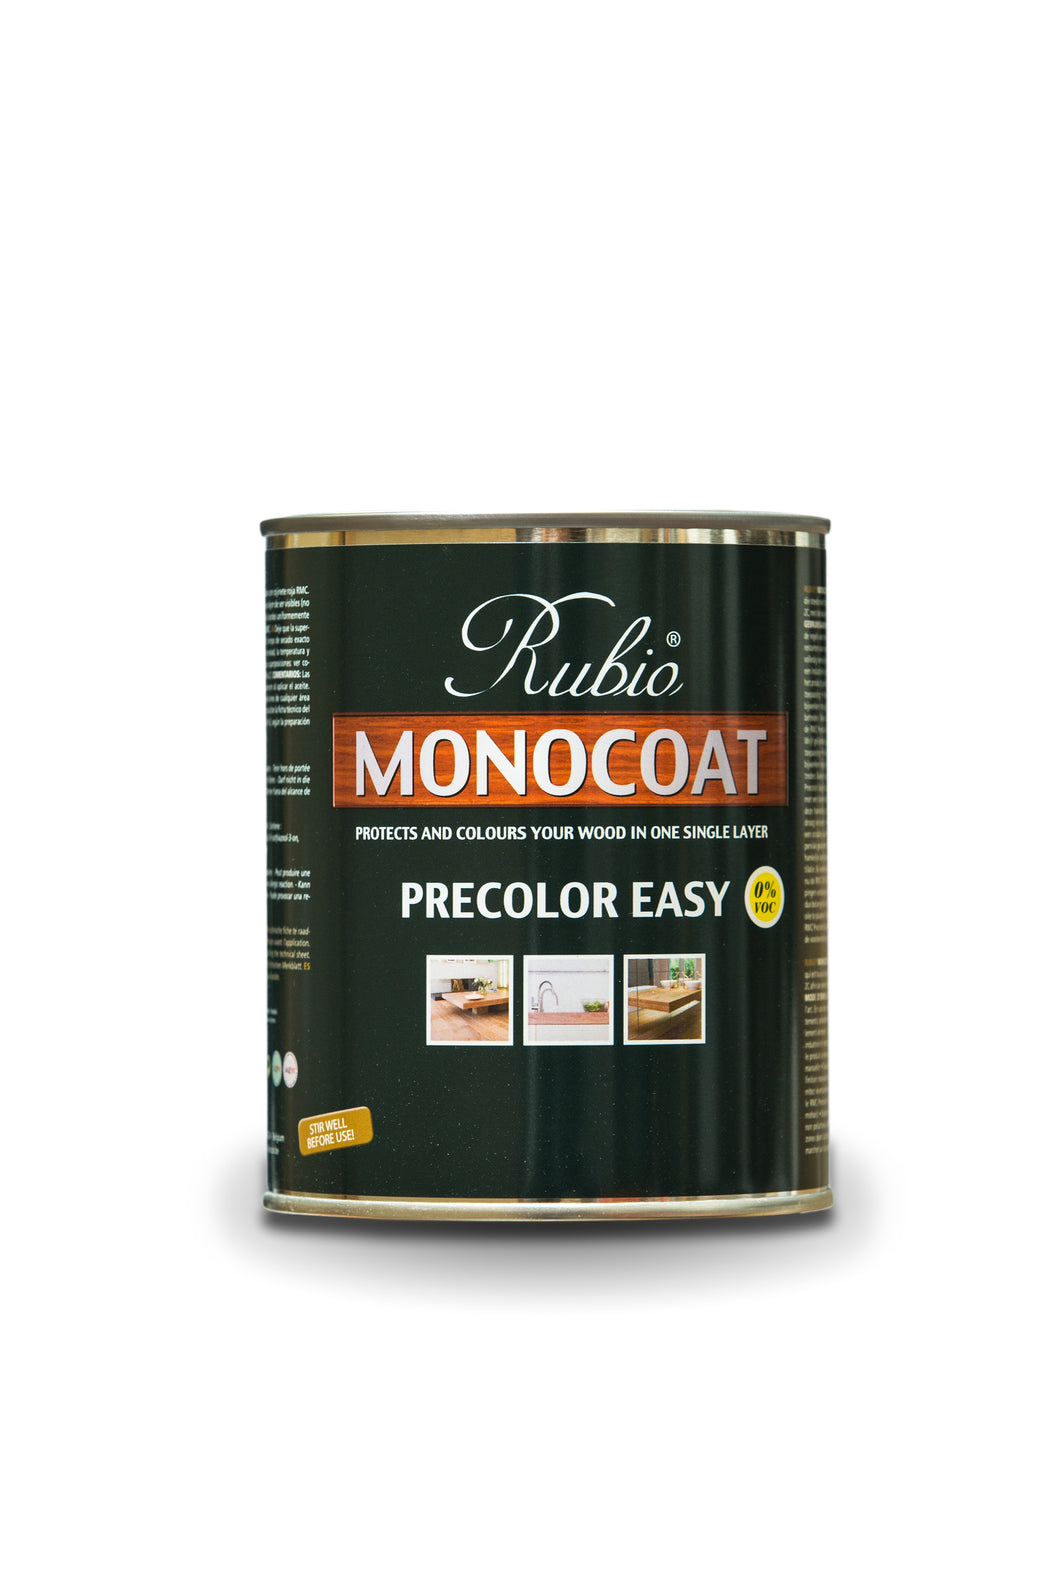 Rubio Monocoat Wood Stain Pre-Color Easy Monsoon Grey